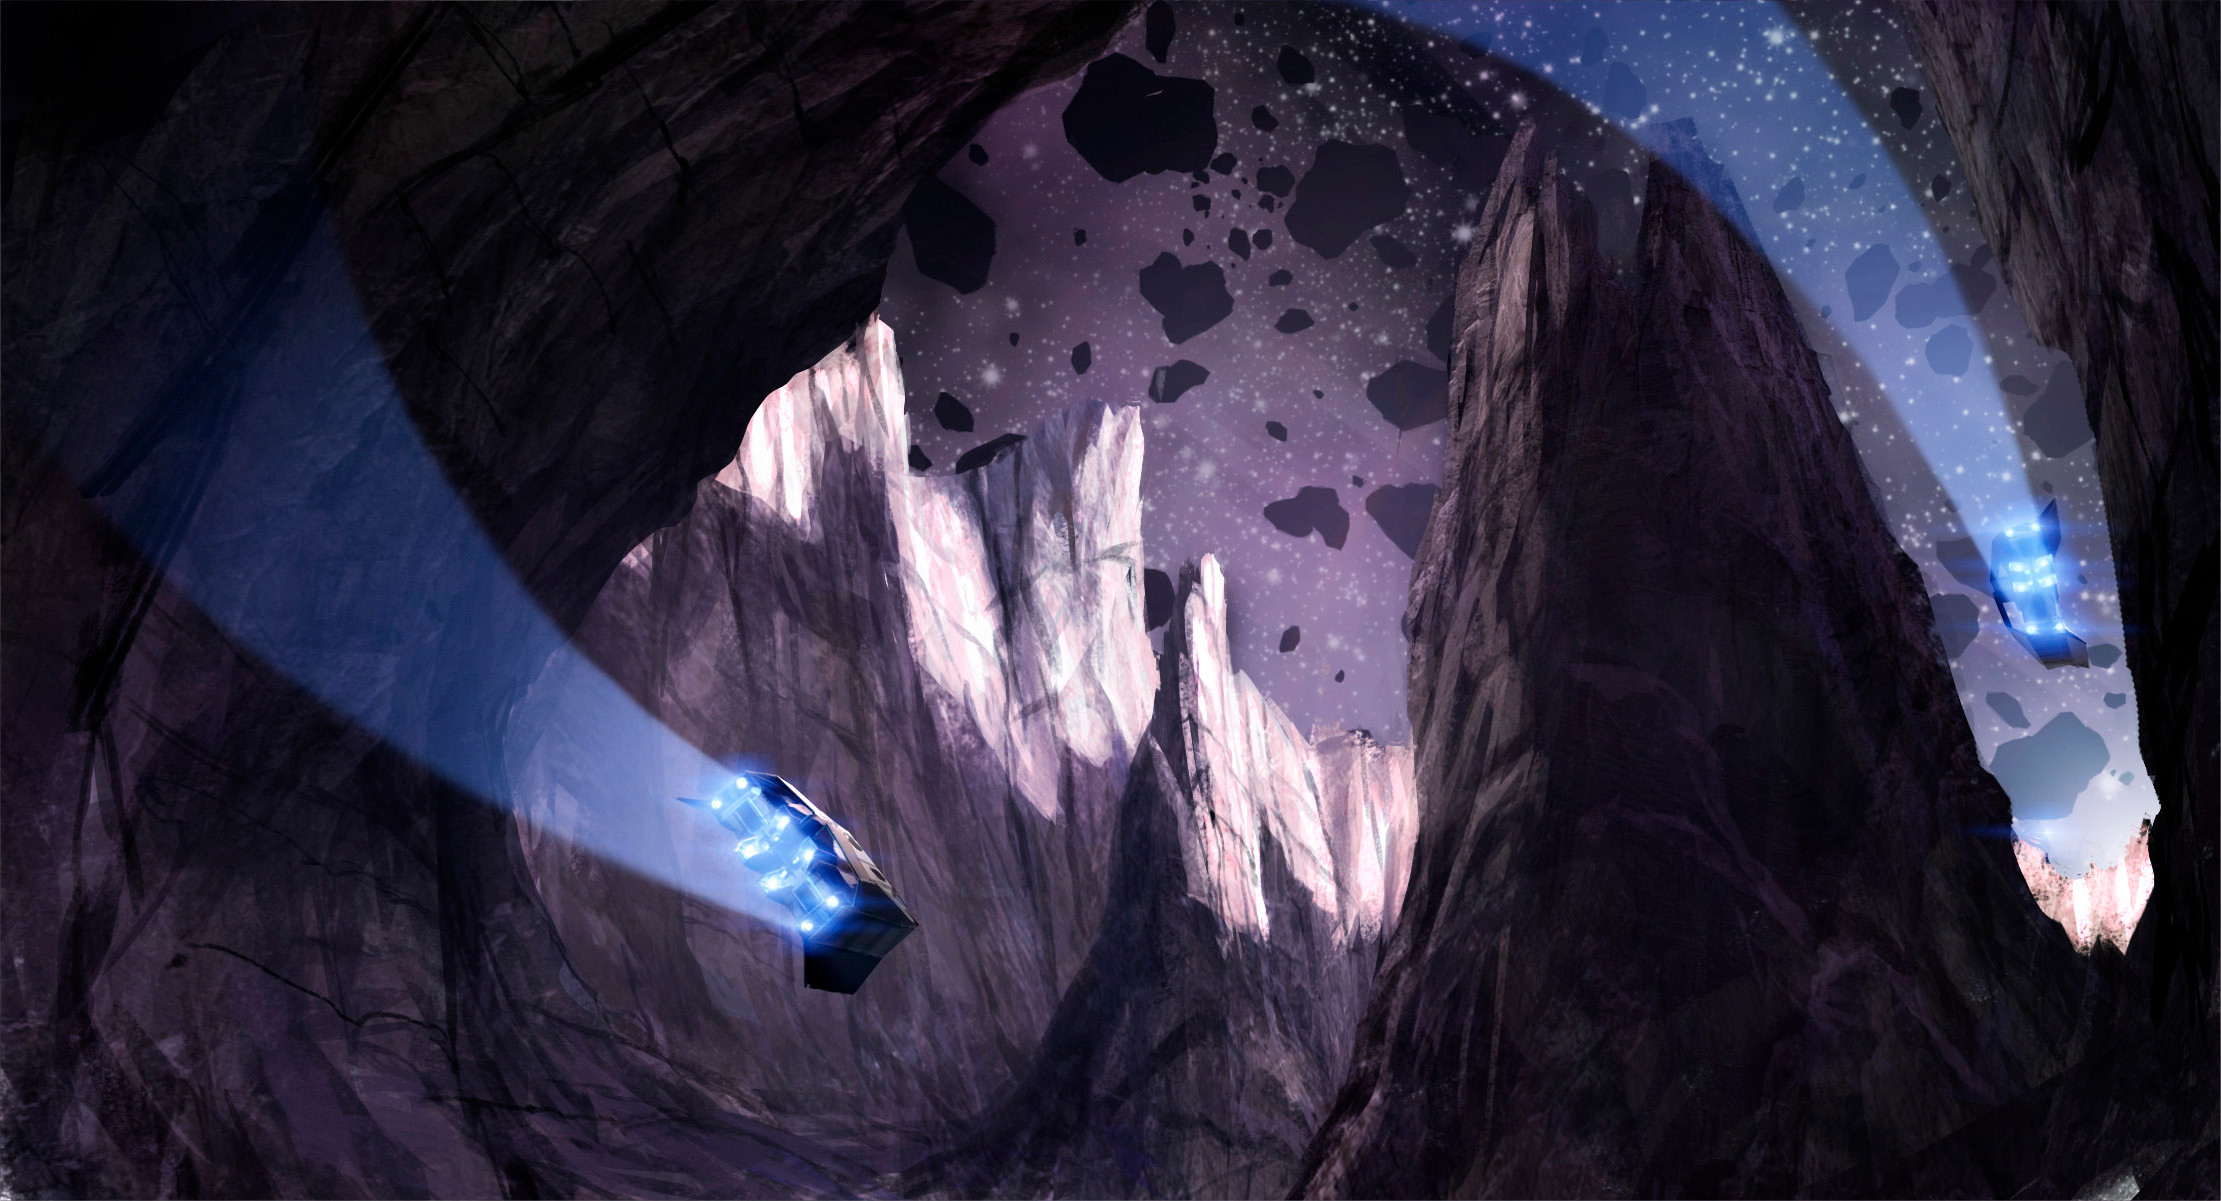 The Shenzhou careens between irregular outcroppings as our sister ships swoop into view.